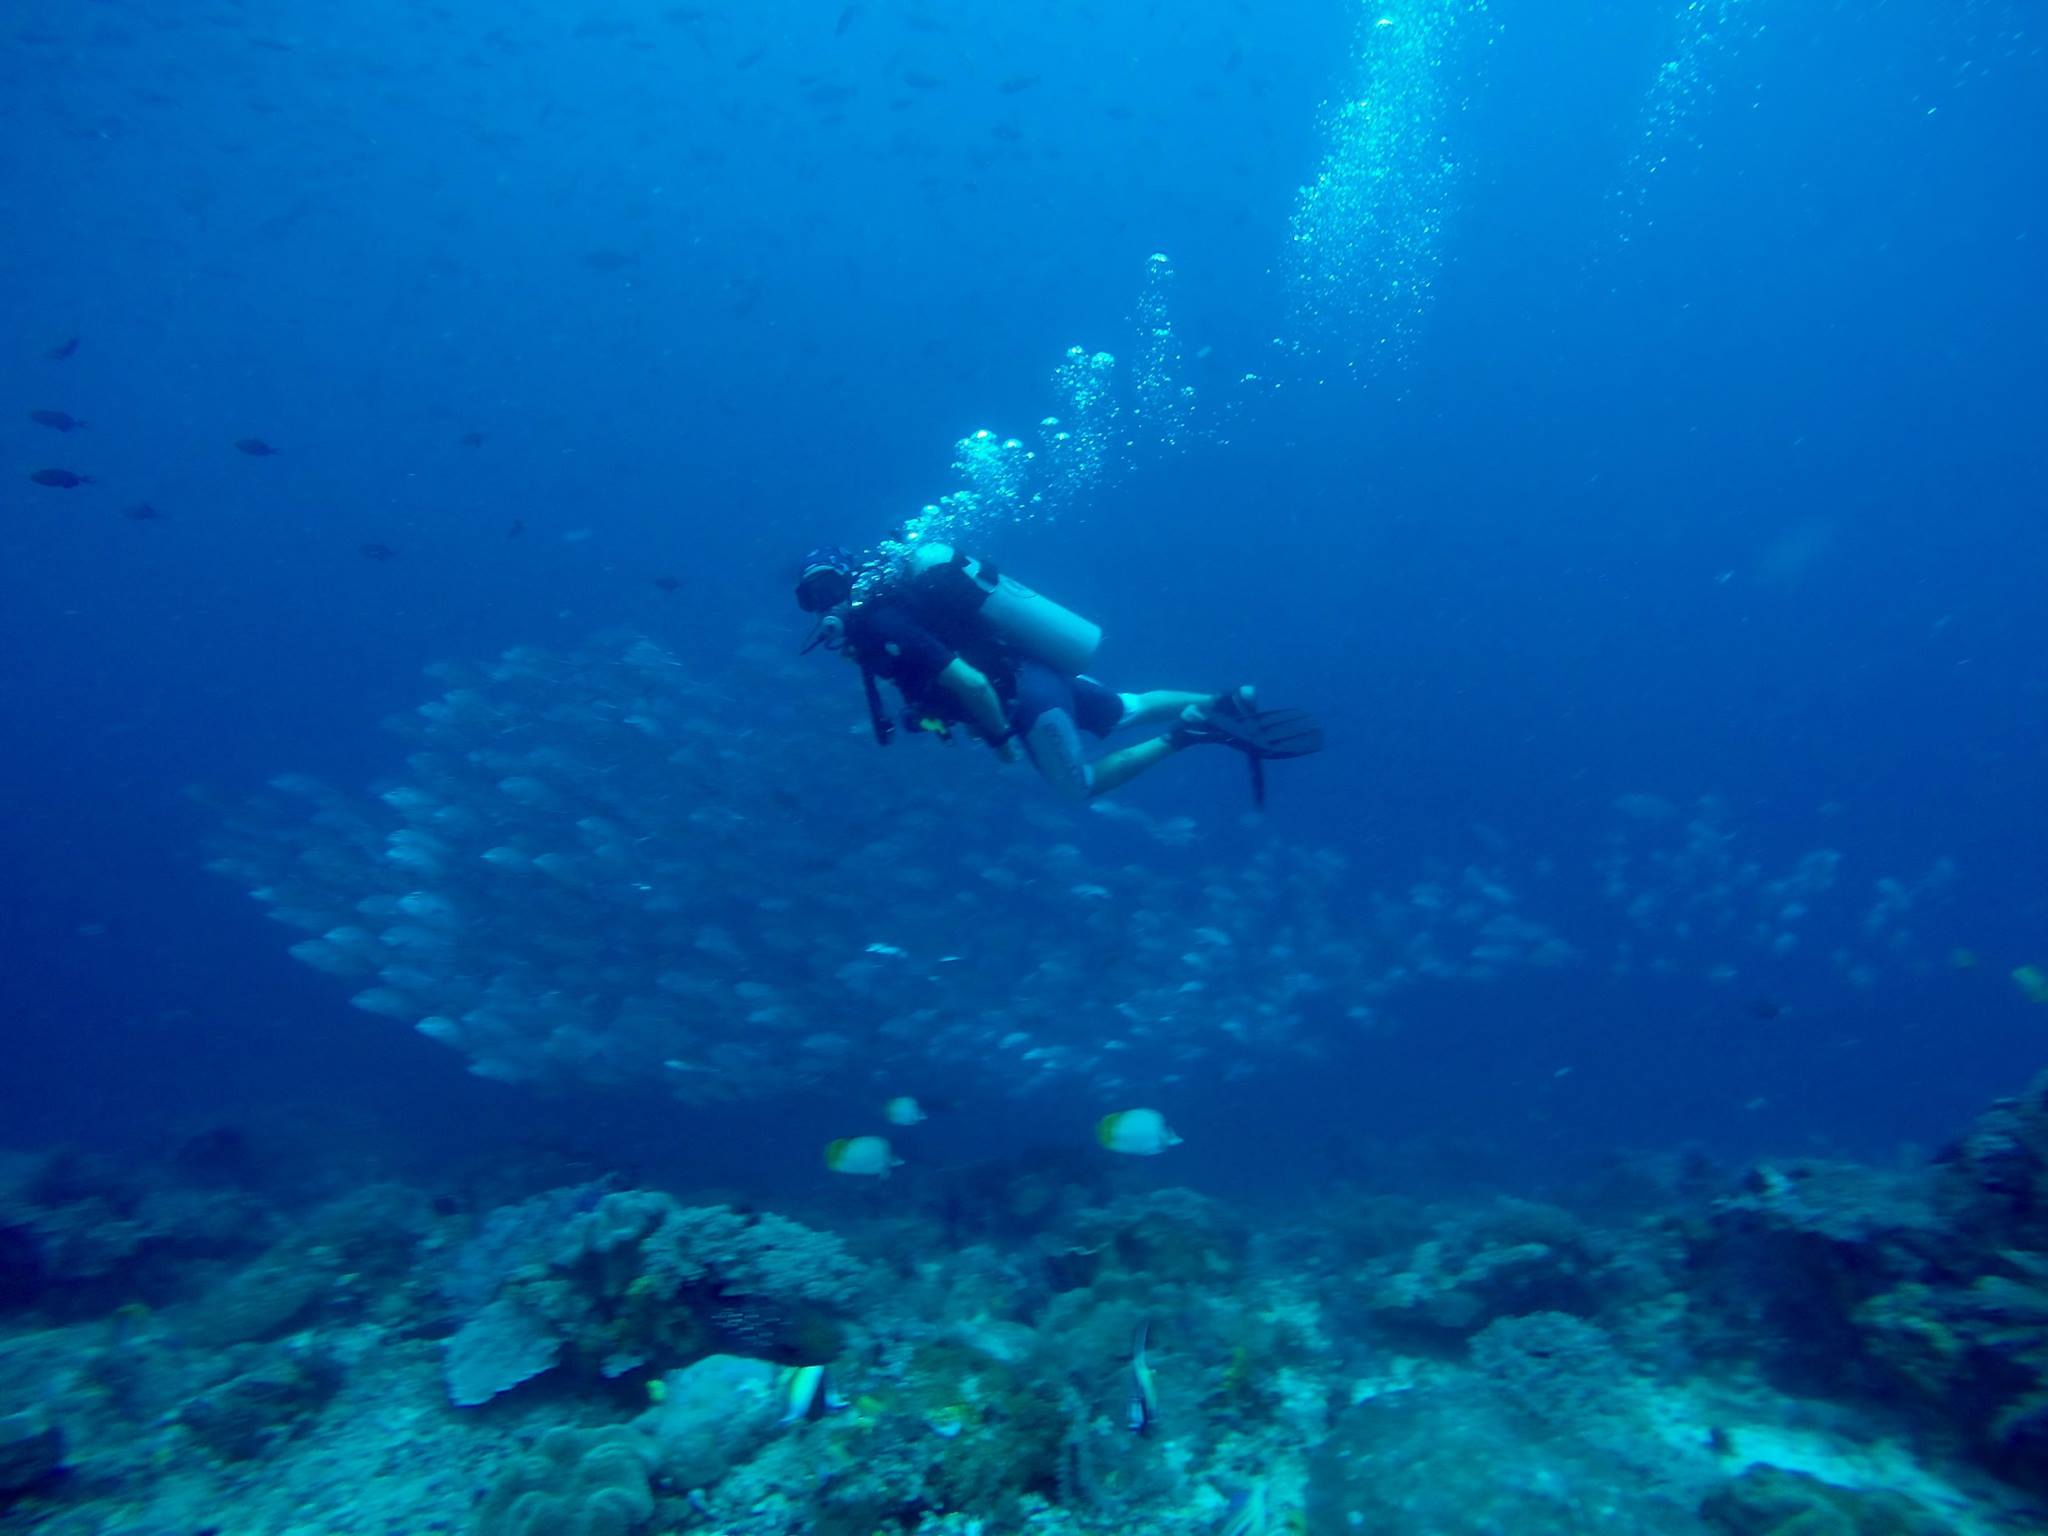 Check out the podcast interview on diving and travelling   http://ausbackpacking.com/podcast/diving-and-travel/